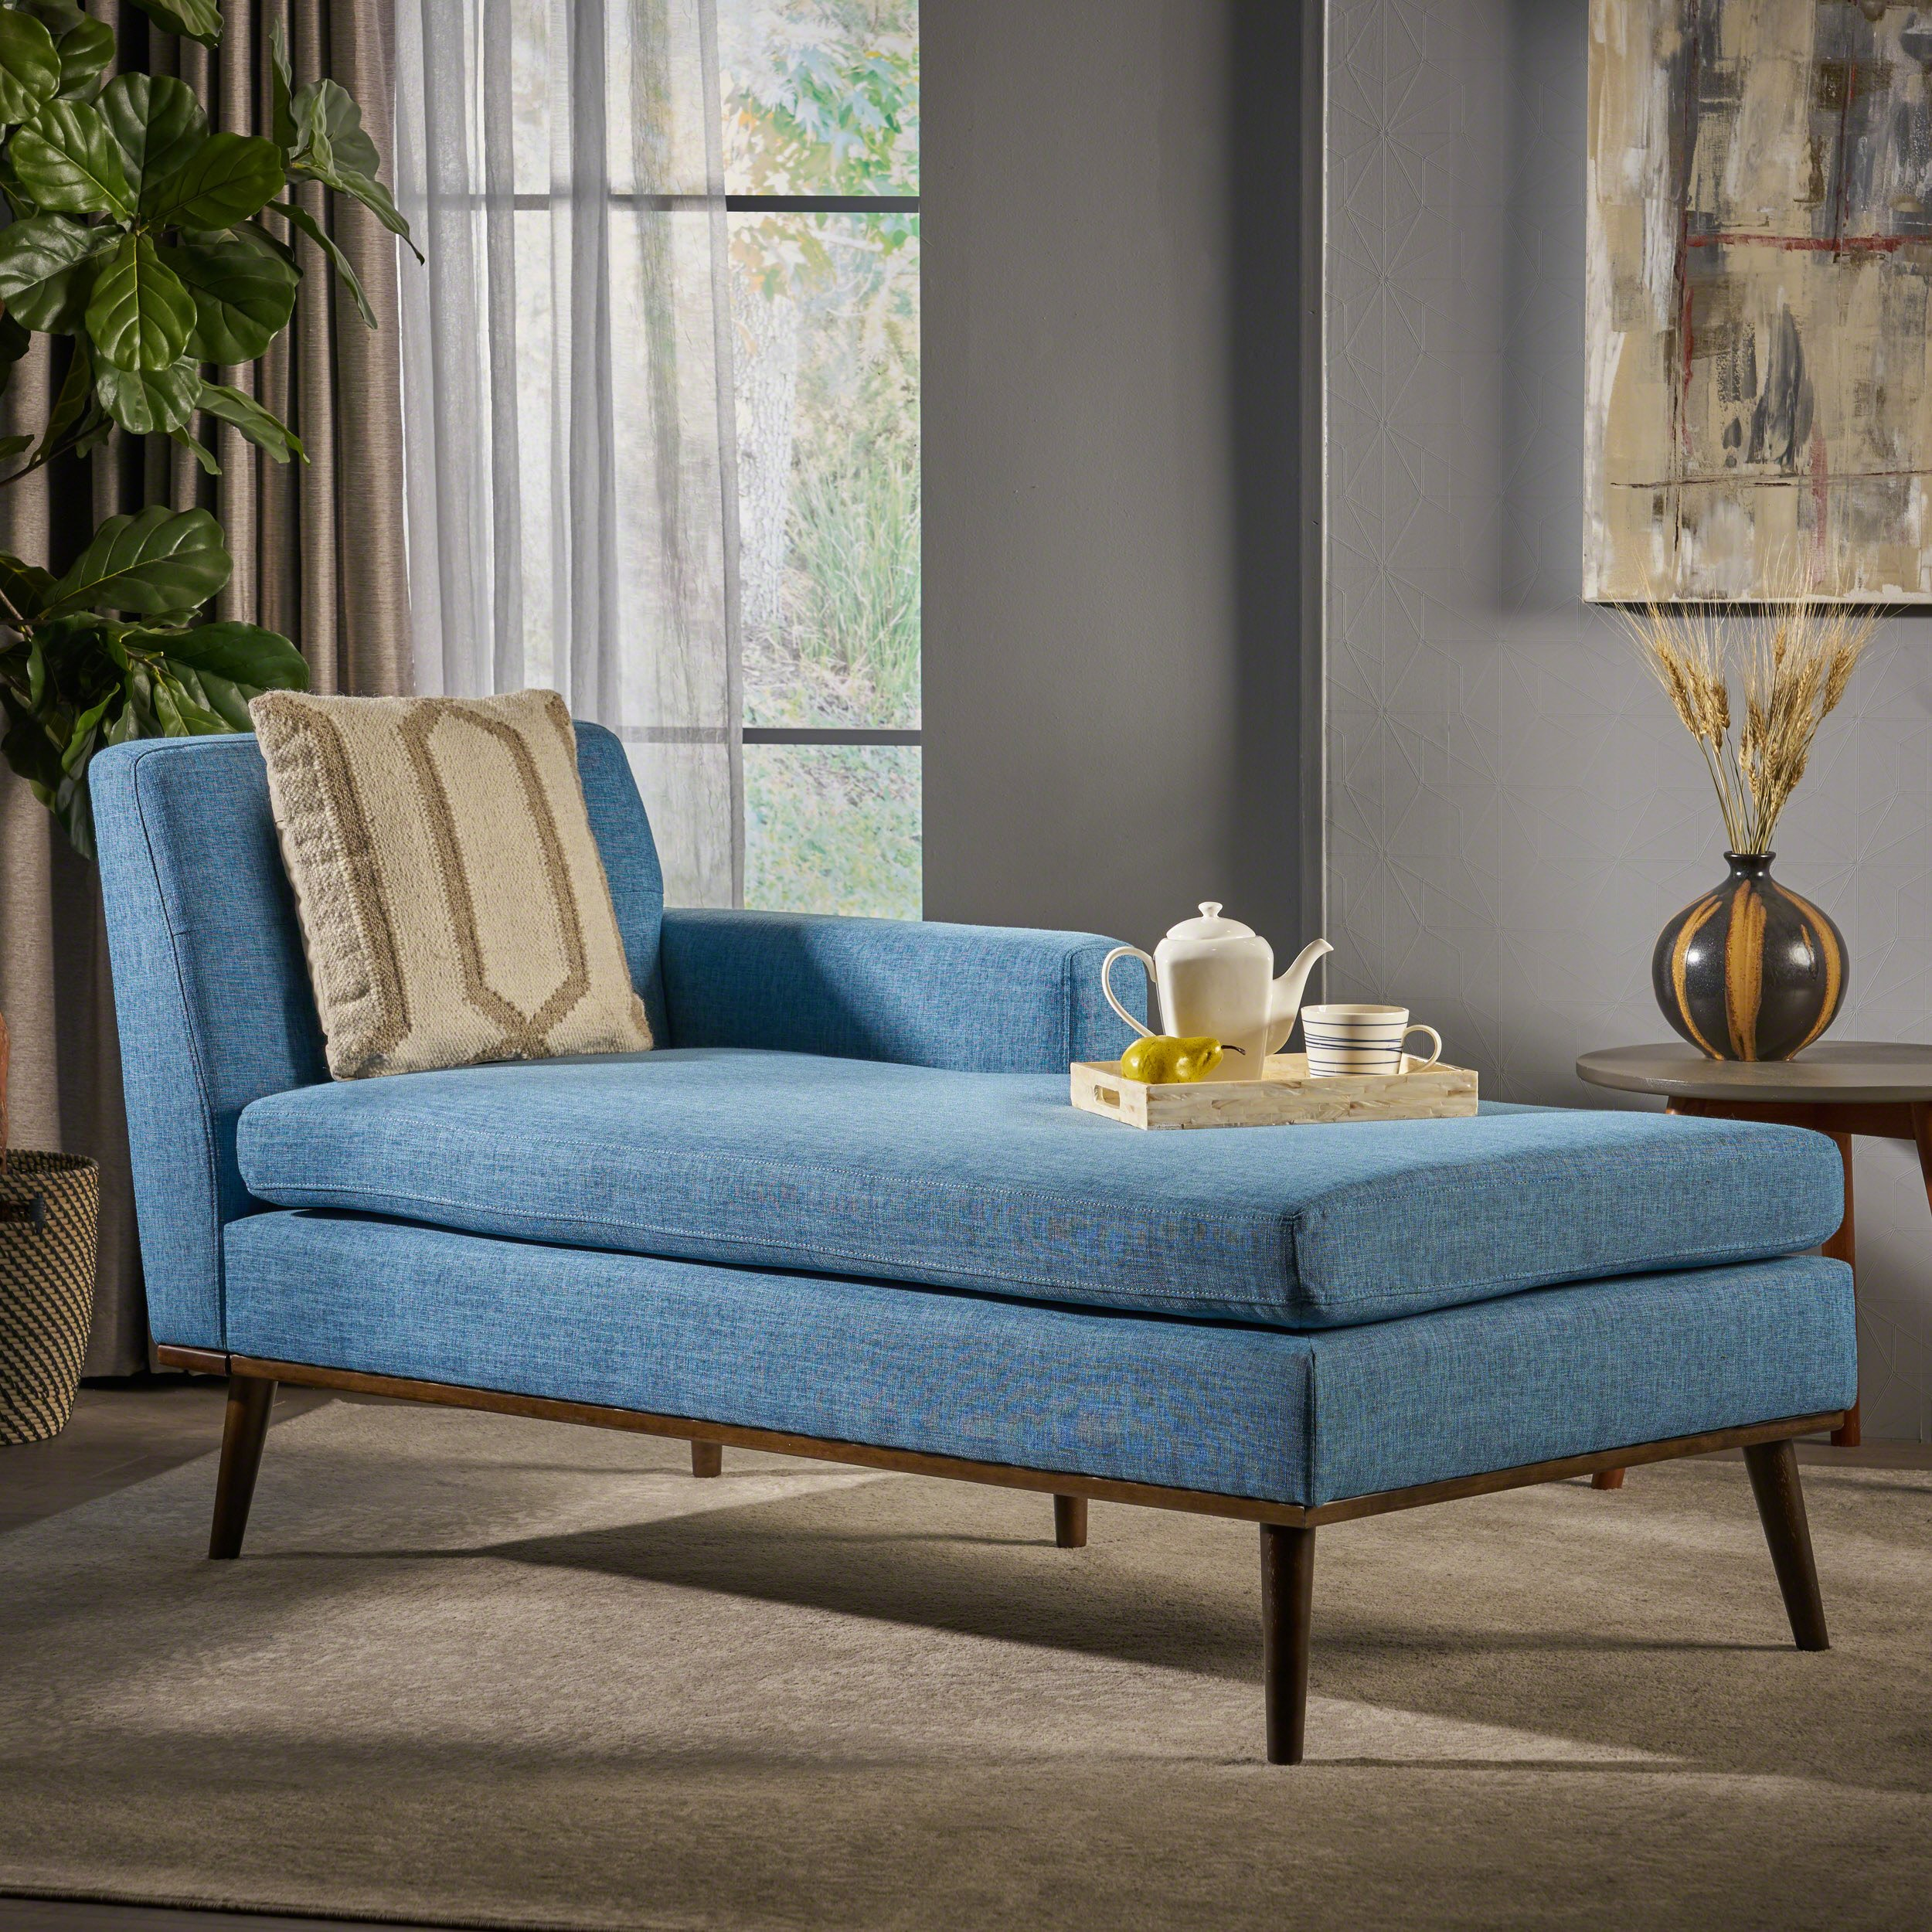 Christopher Knight Home Sophia Mid Century Modern Fabric Chaise Lounge, Muted Blue/Walnut by Christopher Knight Home